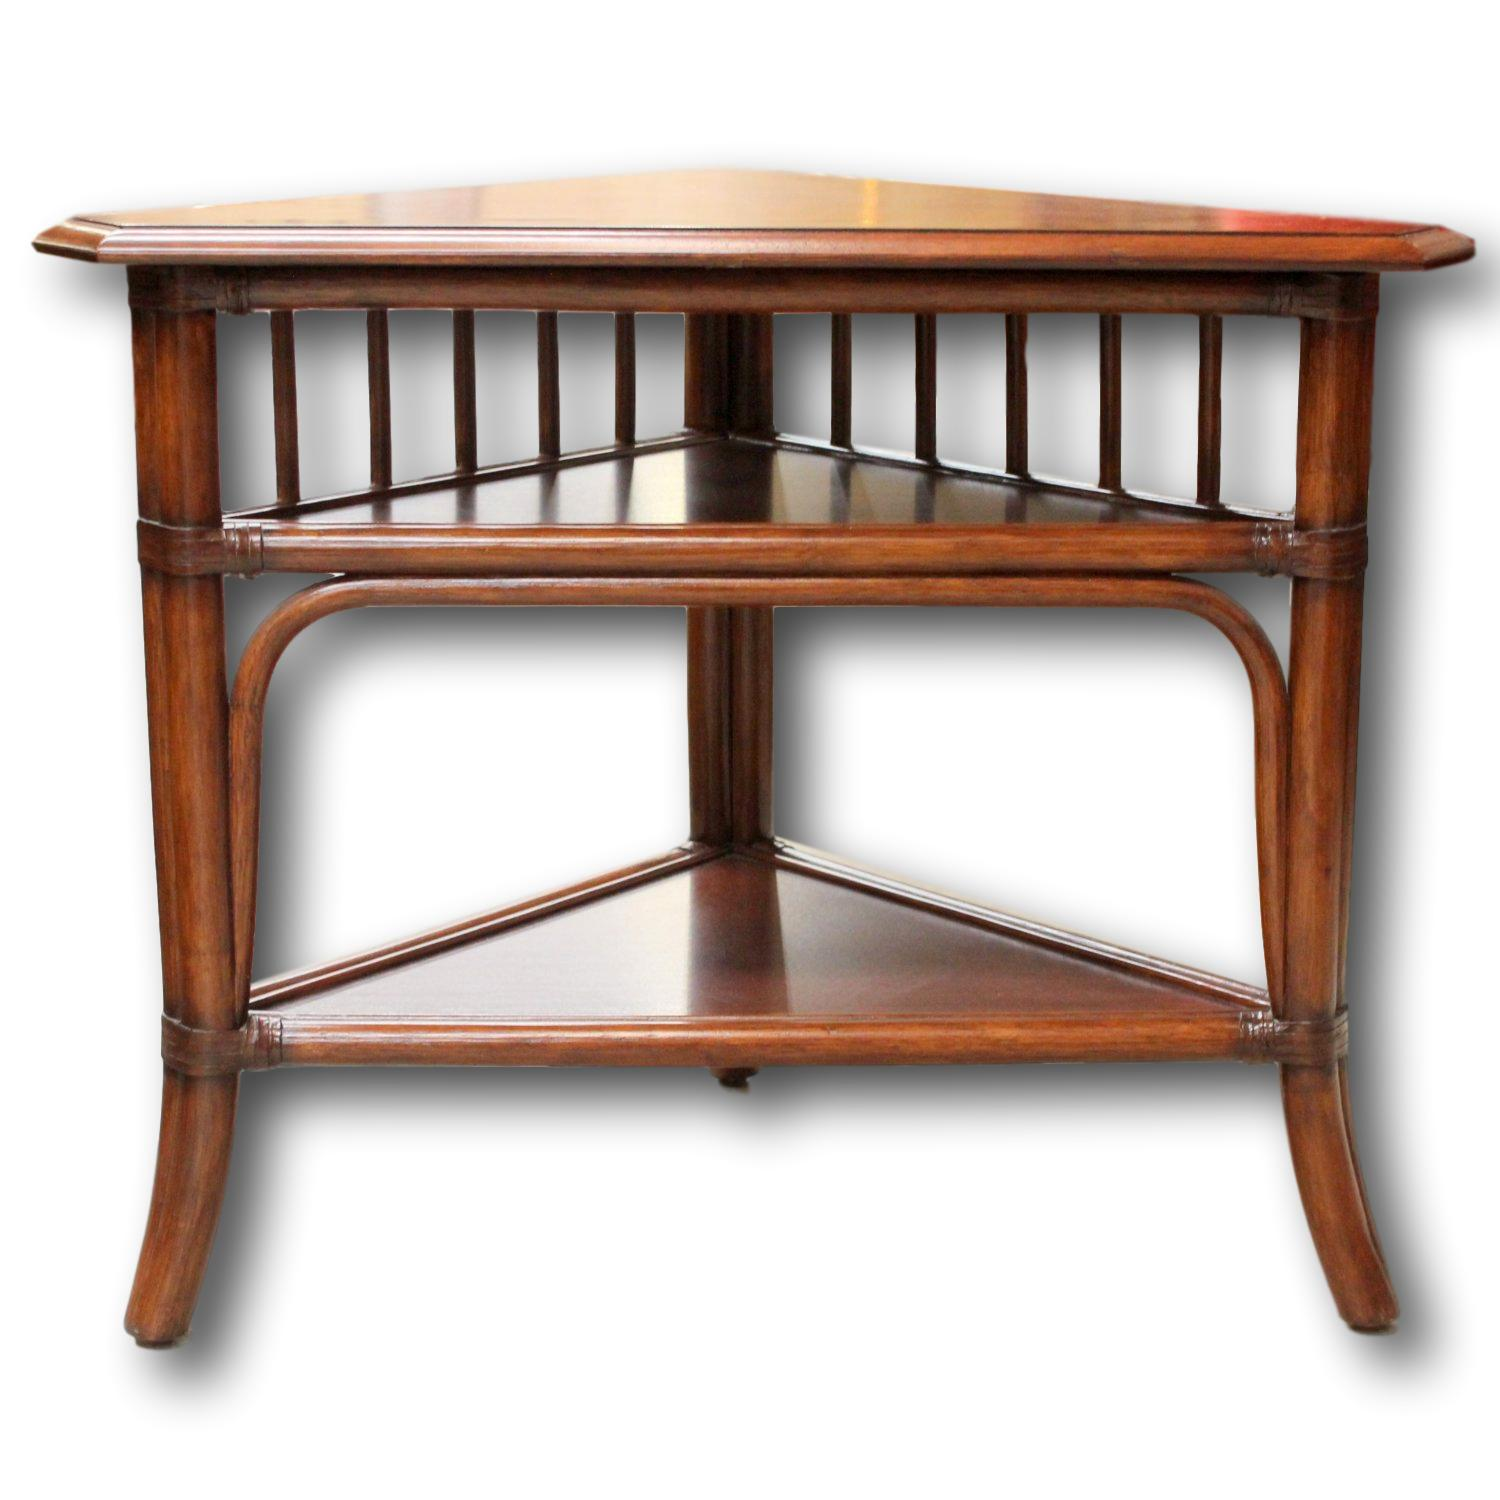 ethan allen triangular end table upscale consignment furniture tables long narrow brown sofa room ideas cocktail and coffee ashley gonzales bedside dog glass shade floor lamp